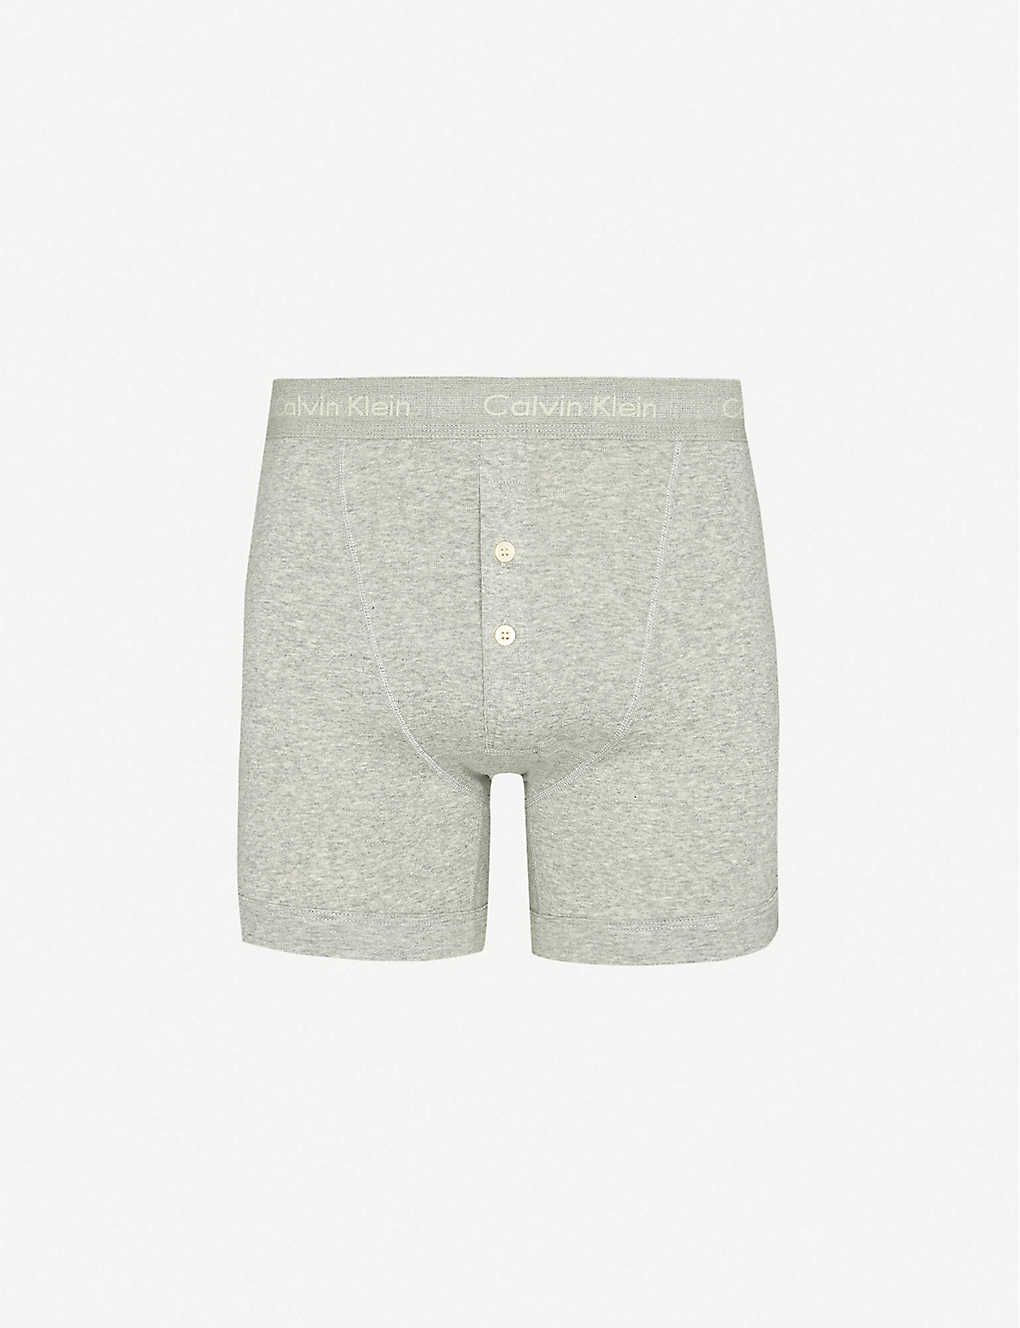 CALVIN KLEIN: Button-fly cotton-jersey boxer briefs